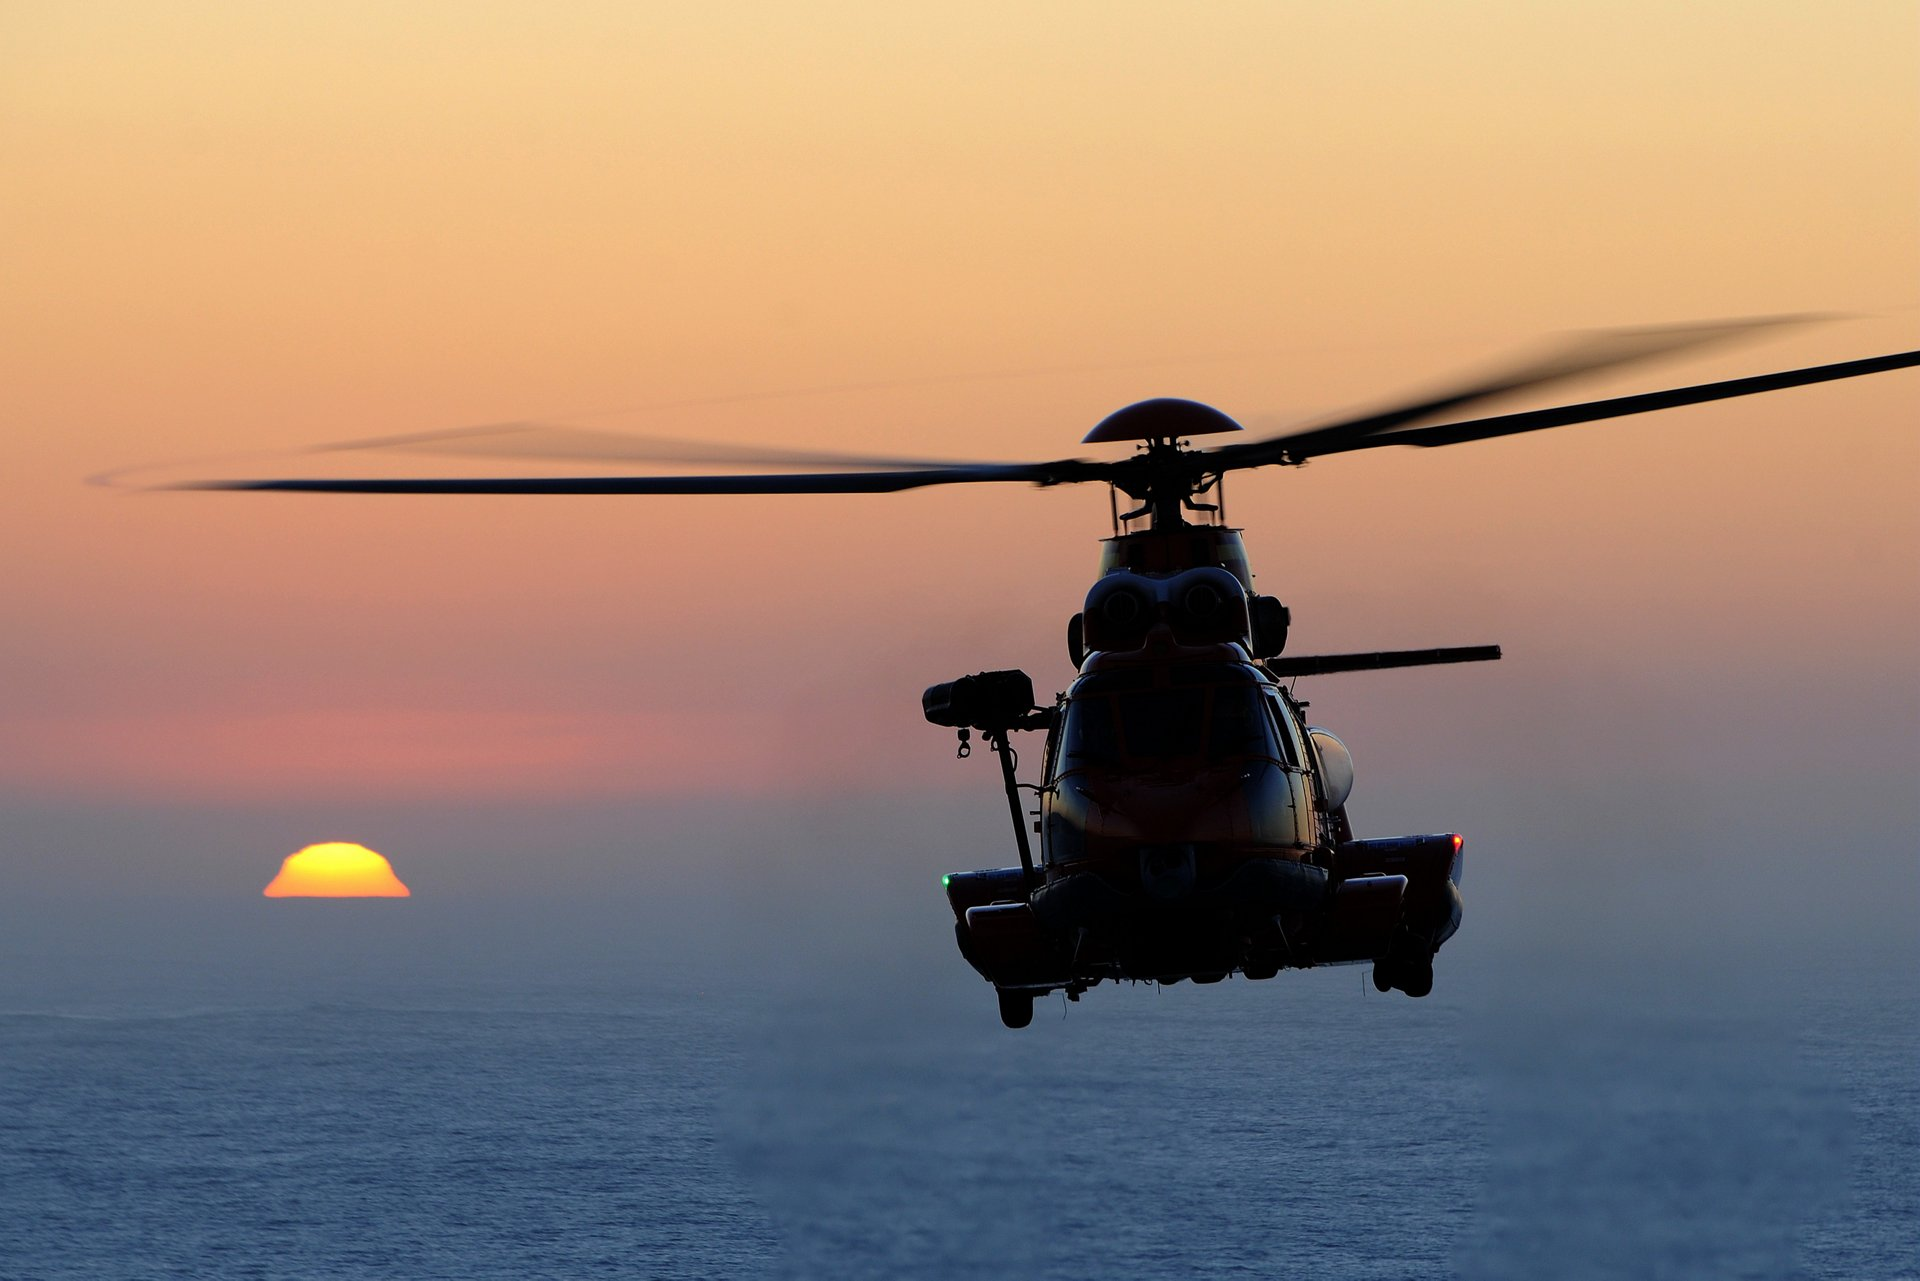 Air Greenland has ordered two Airbus H225 heavy helicopters to support its bid to win its home country's search and rescue (SAR) contract.